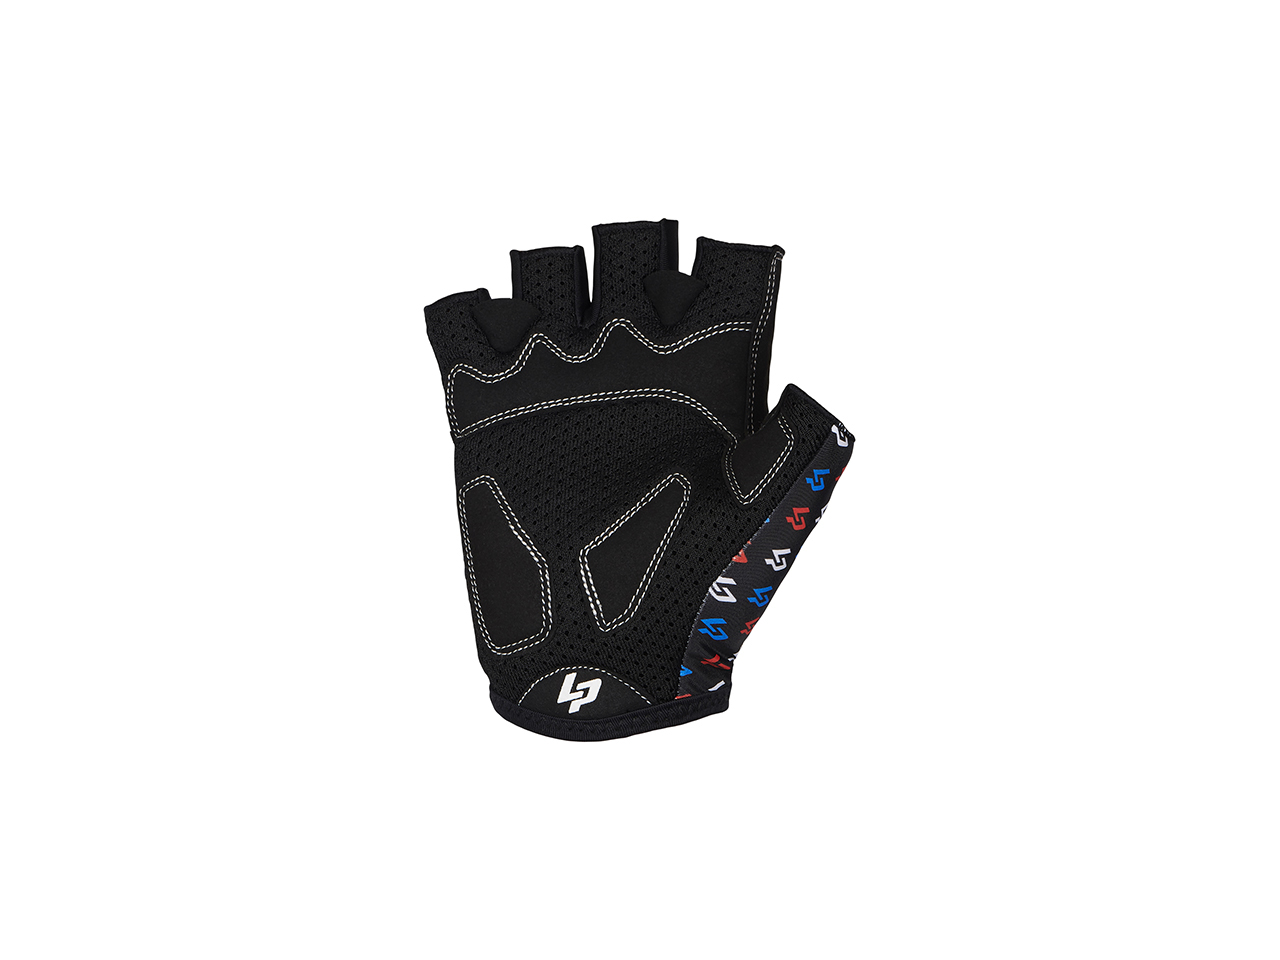 Lapierre So Frenchy cycling gloves - back